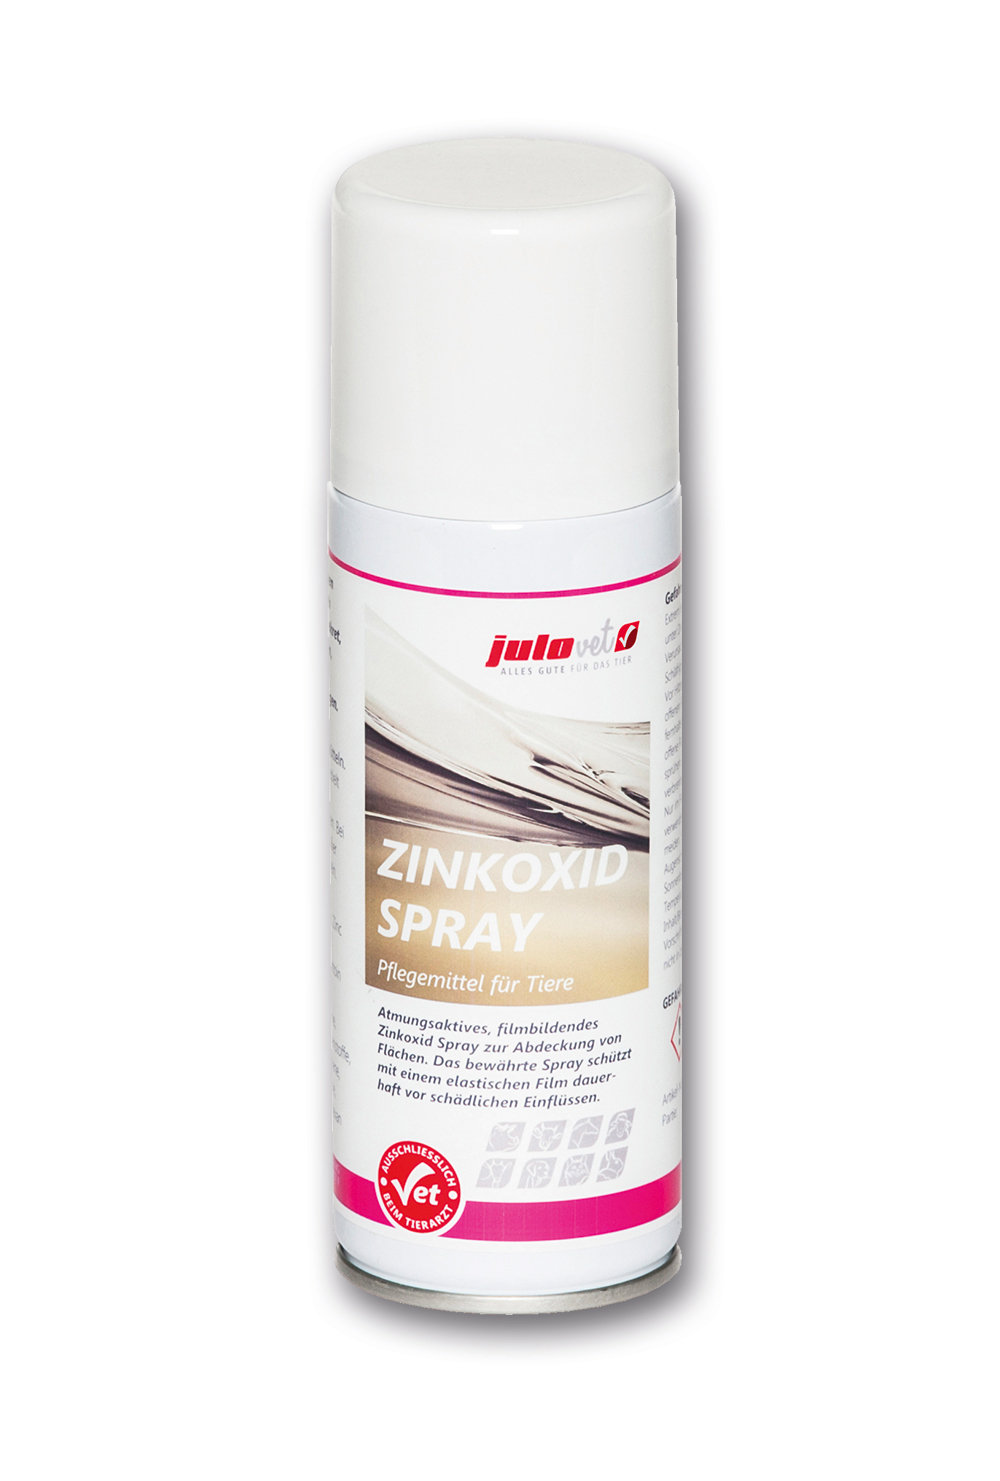 Zinkoxid Spray